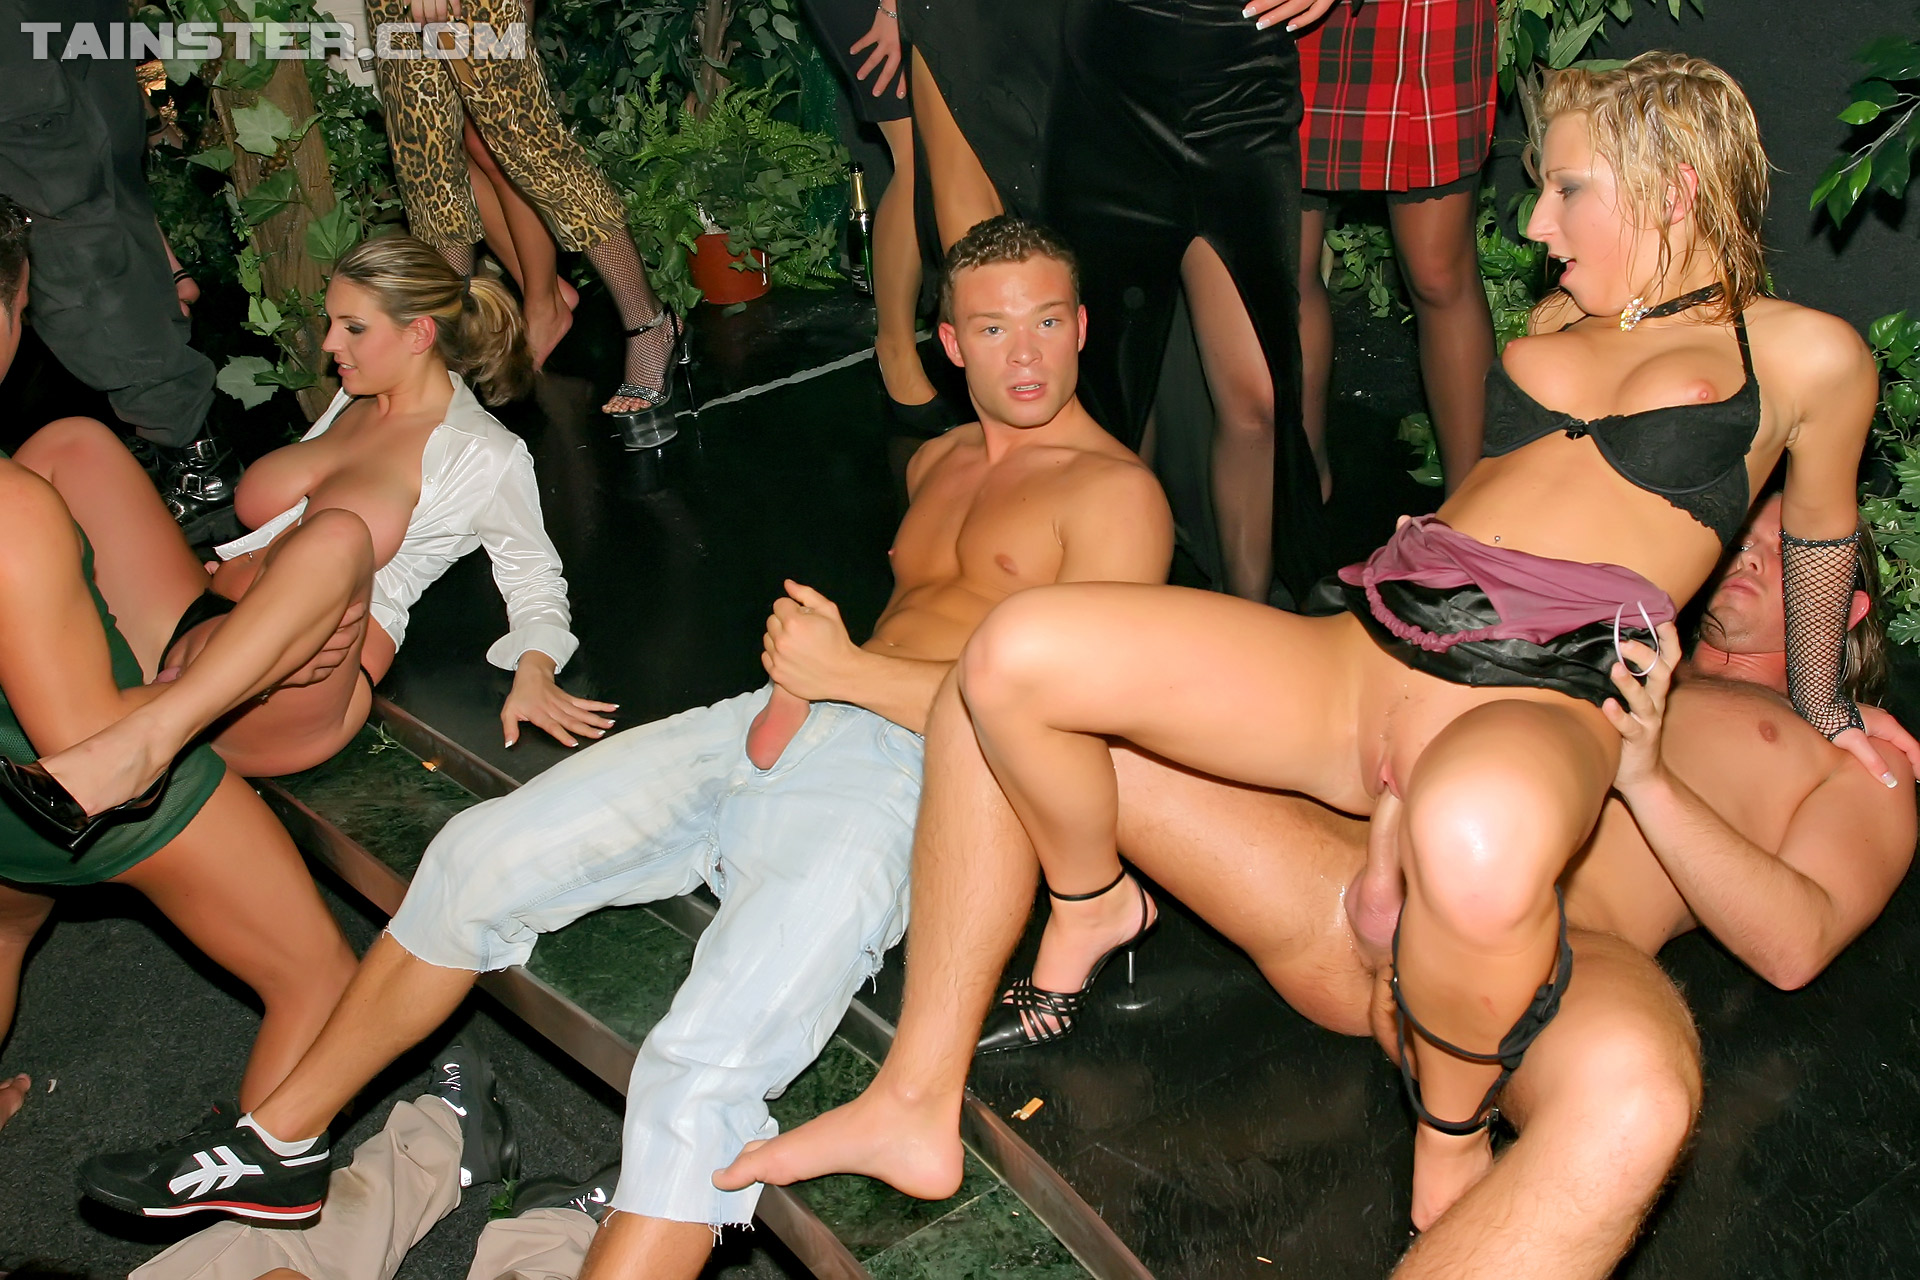 from Chevy young horny girls party pics